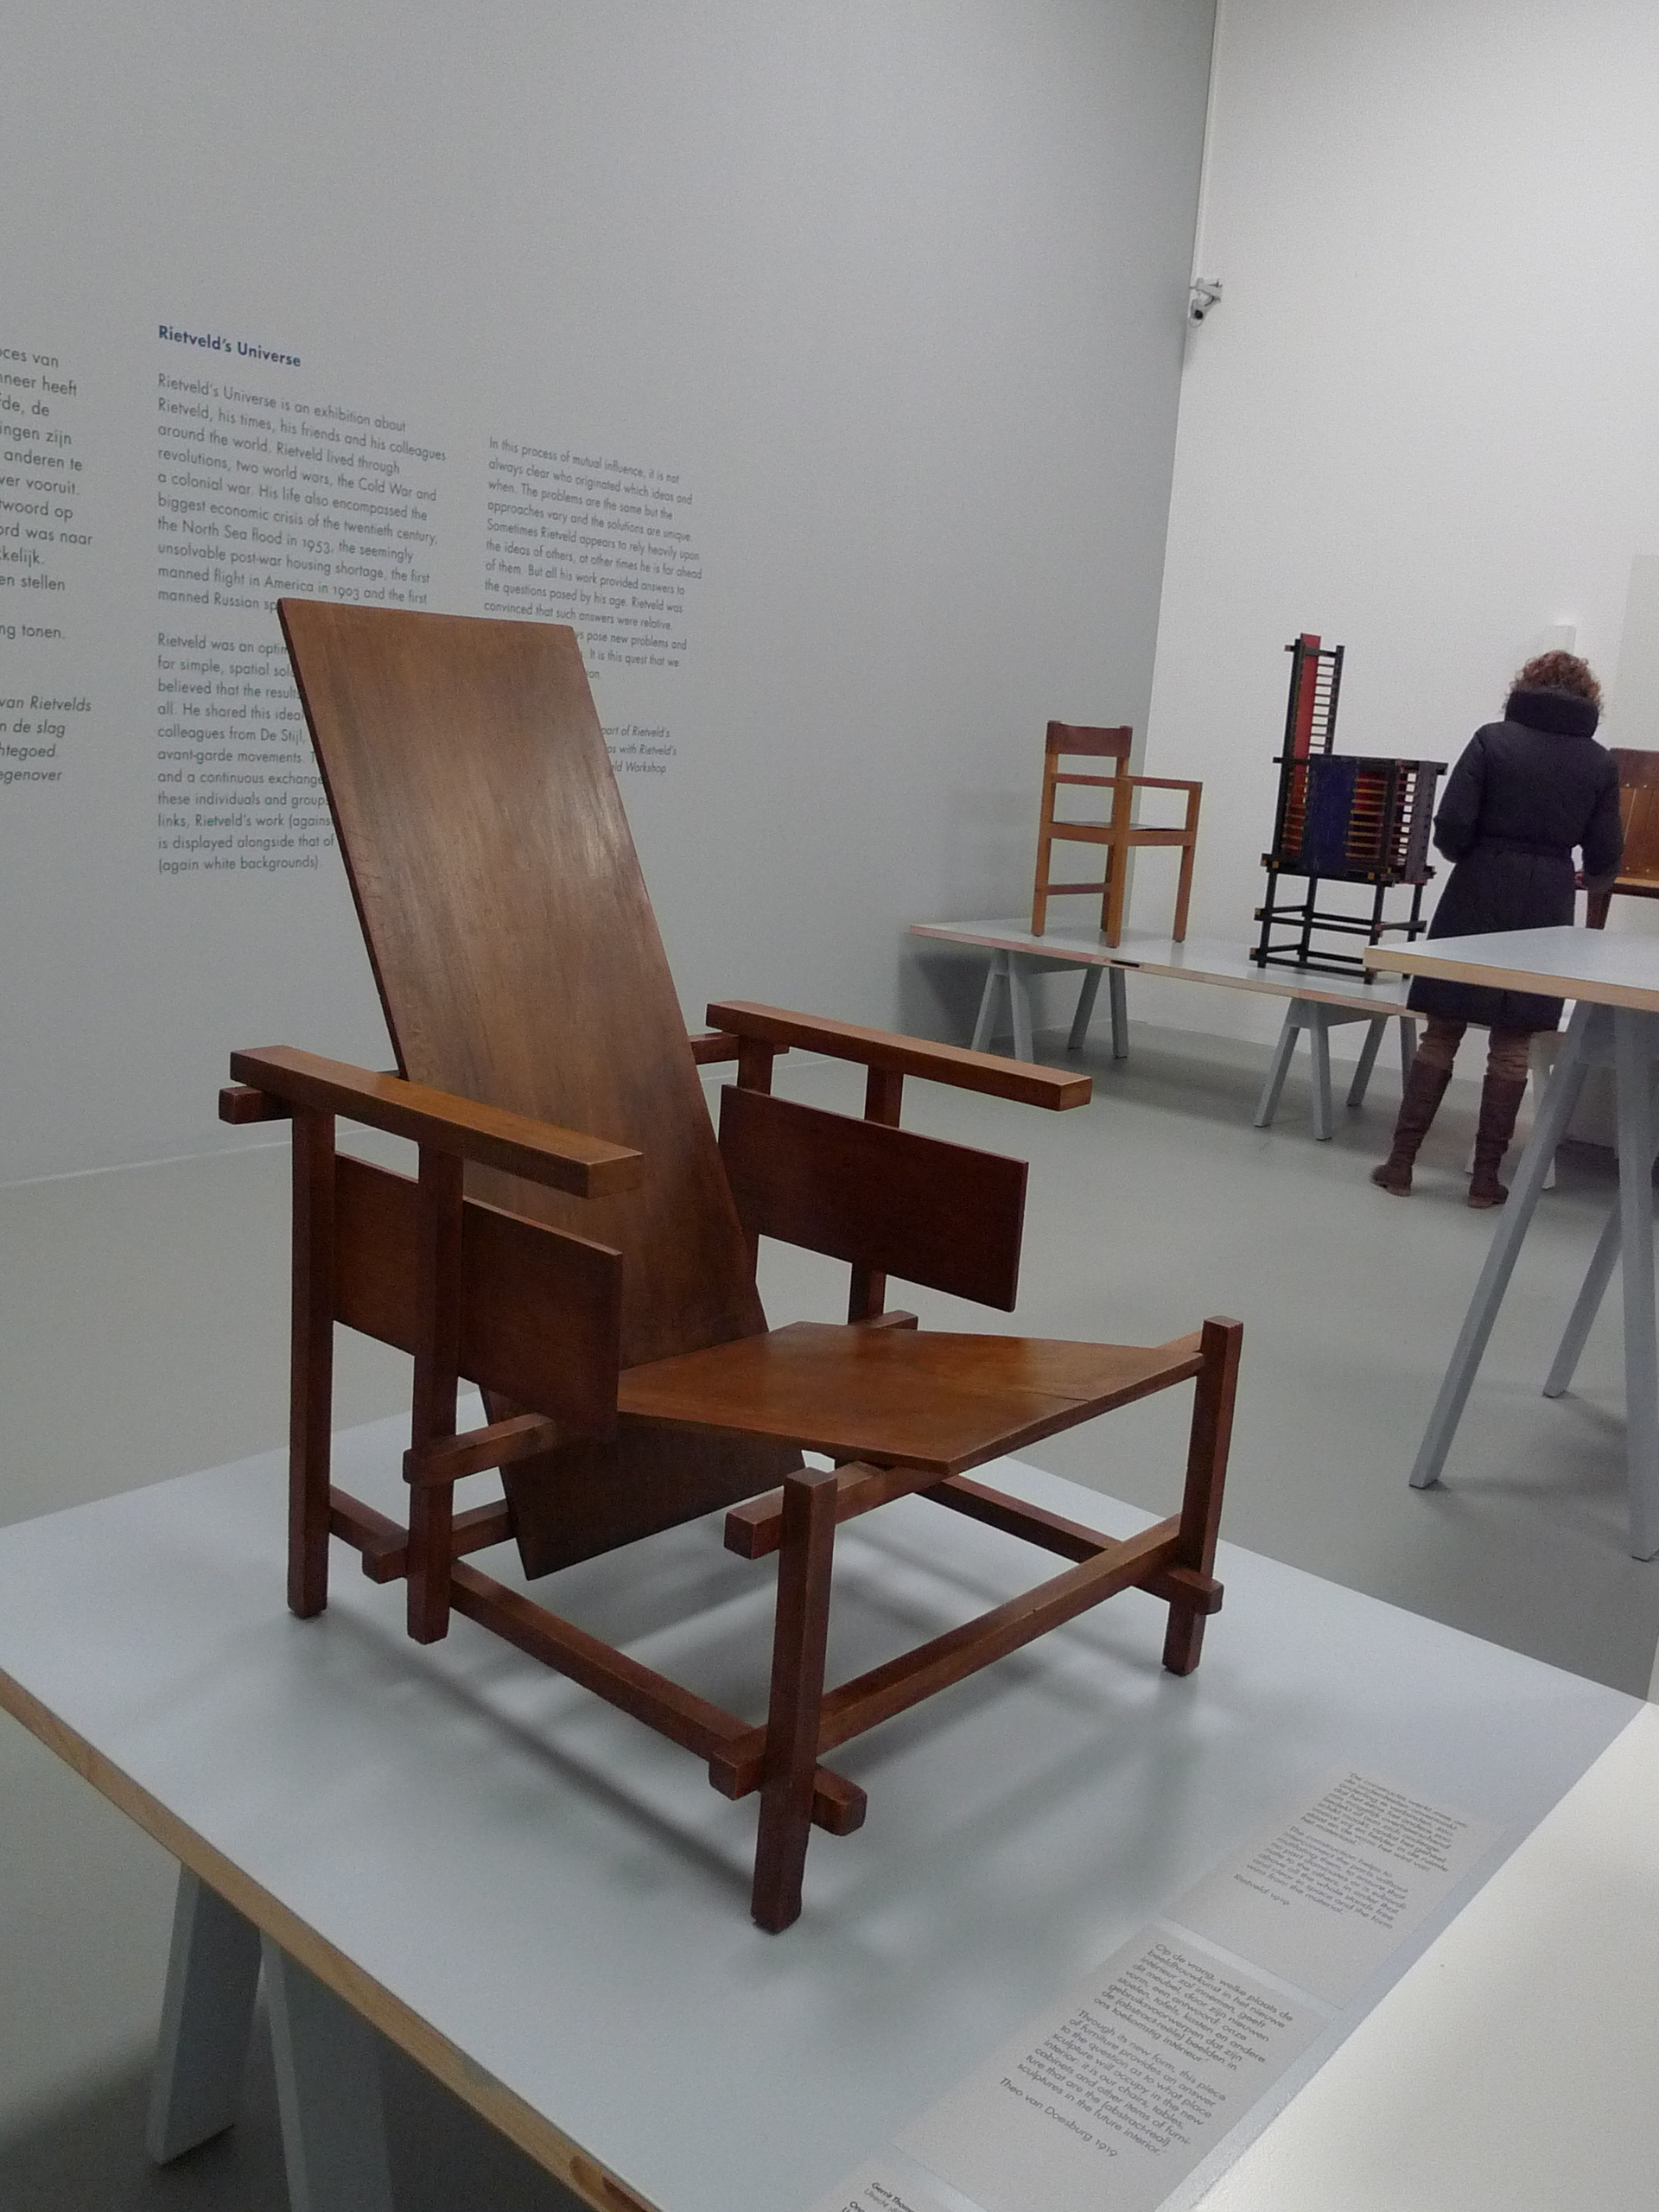 Oh Modernism how I want to sit in your abstraction